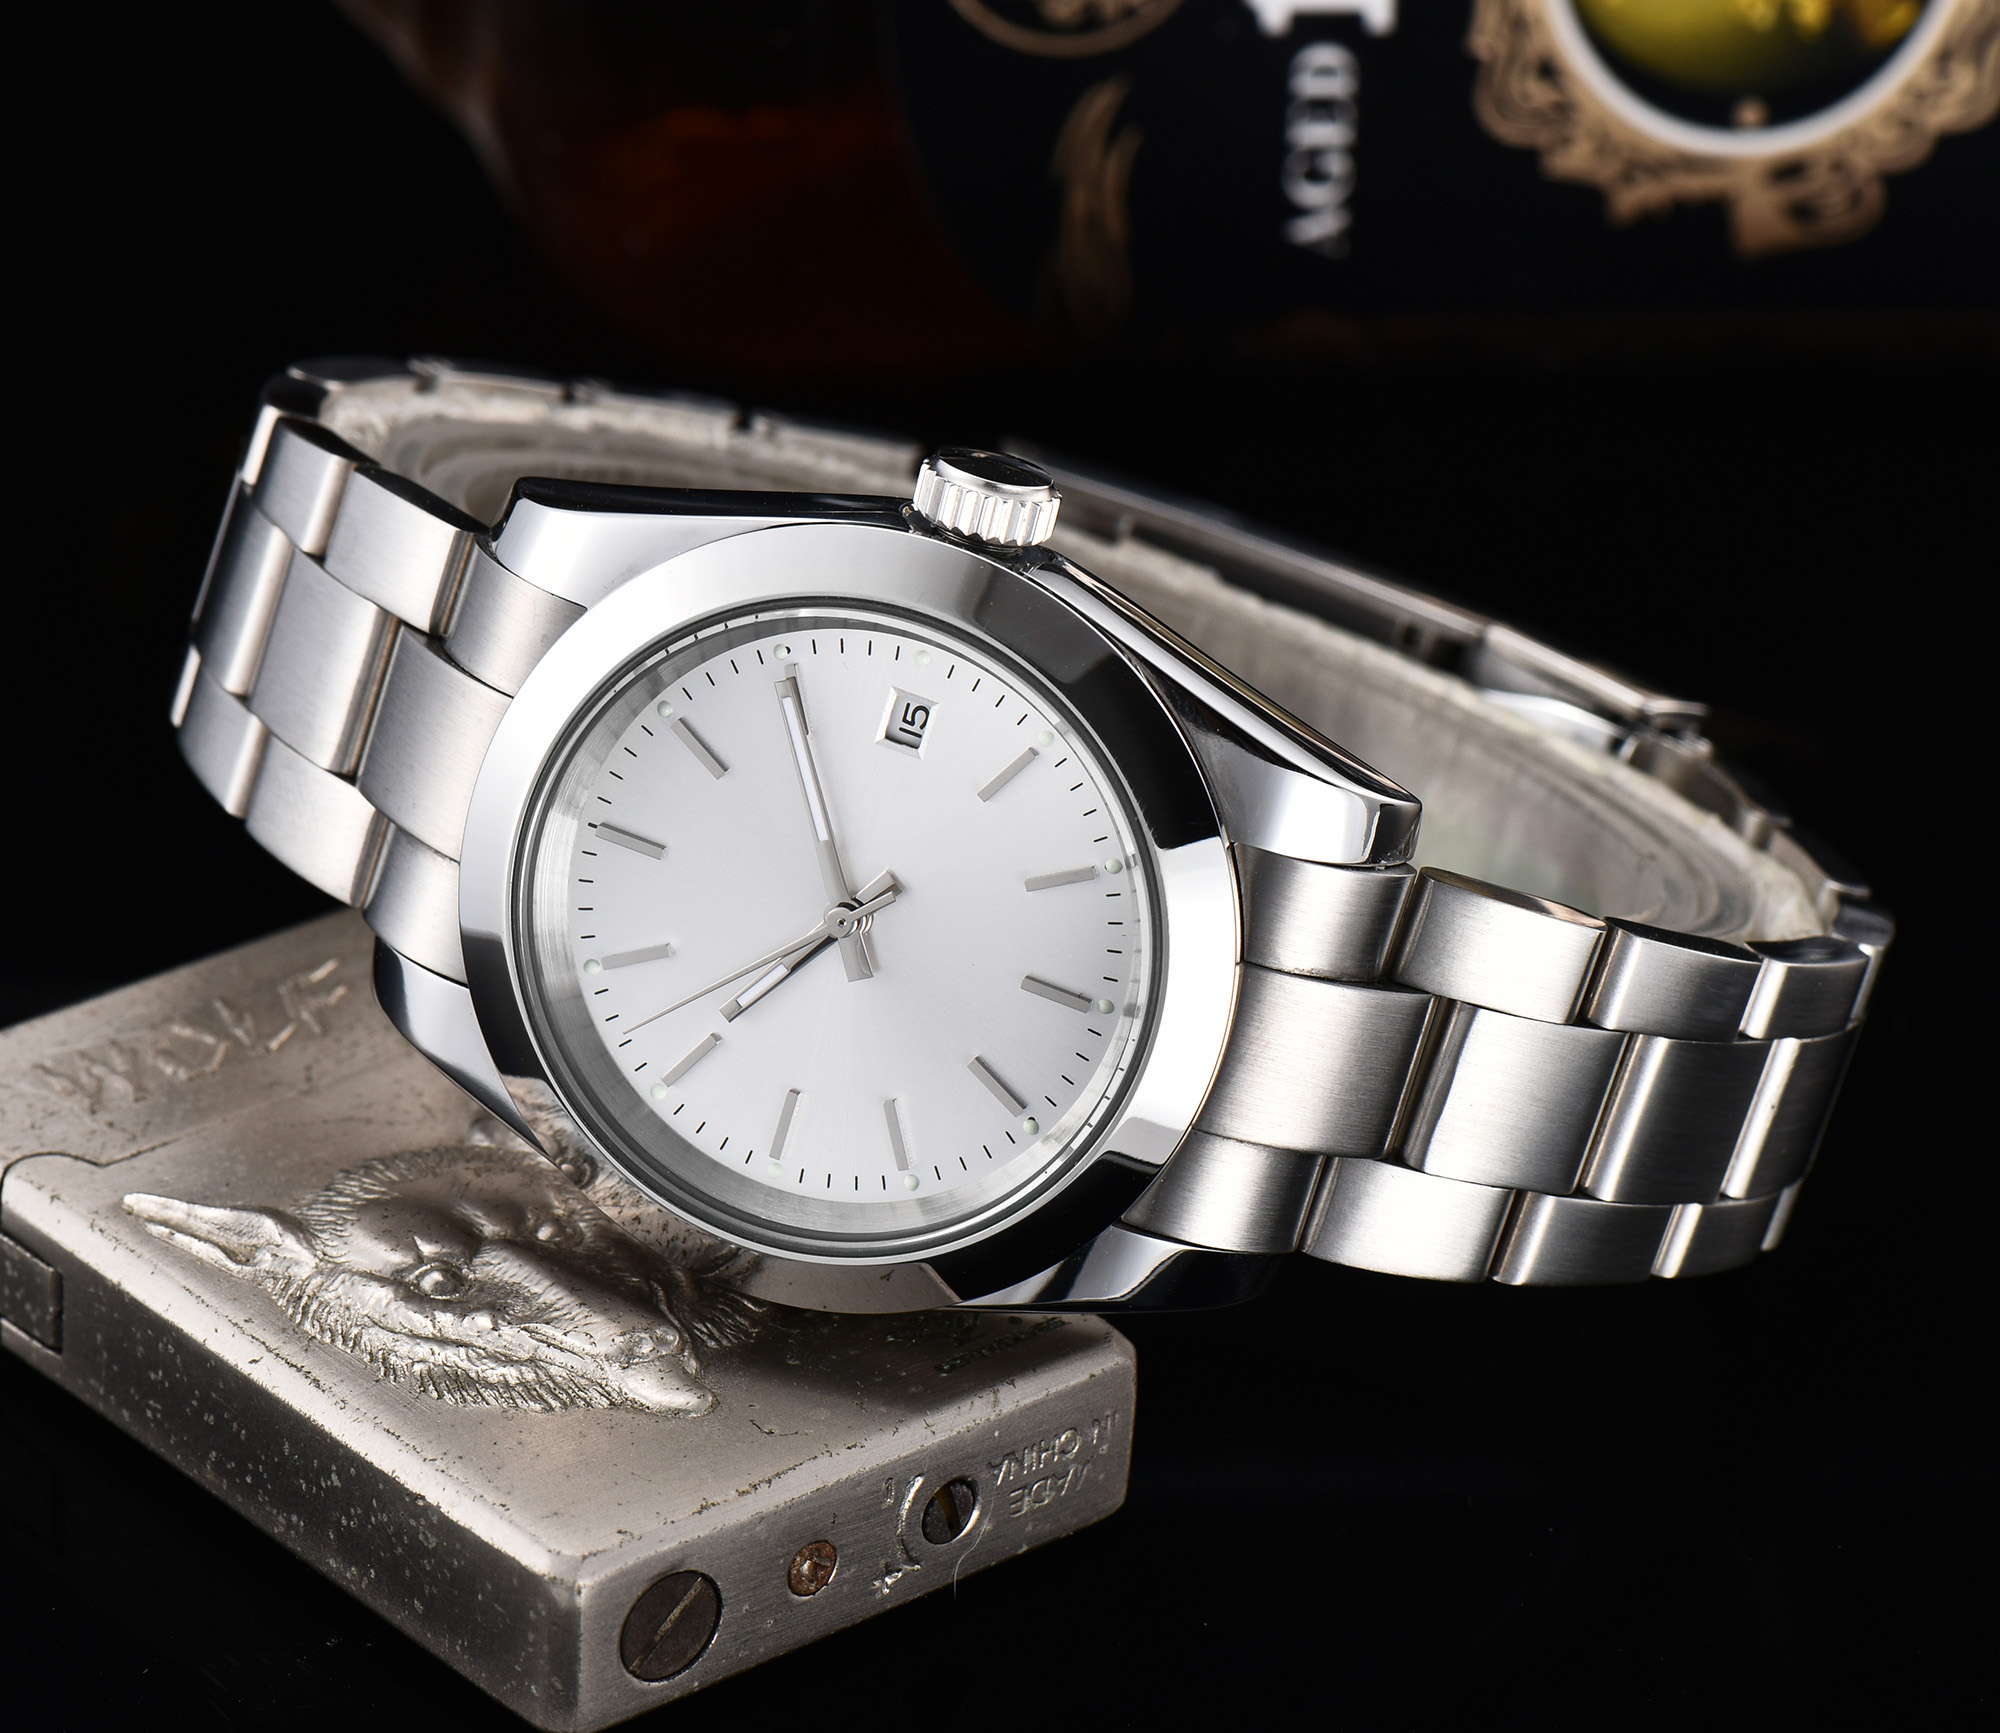 watch men automatic mechanical watch date Luminous waterproof stainless steel 40MM LLS84z